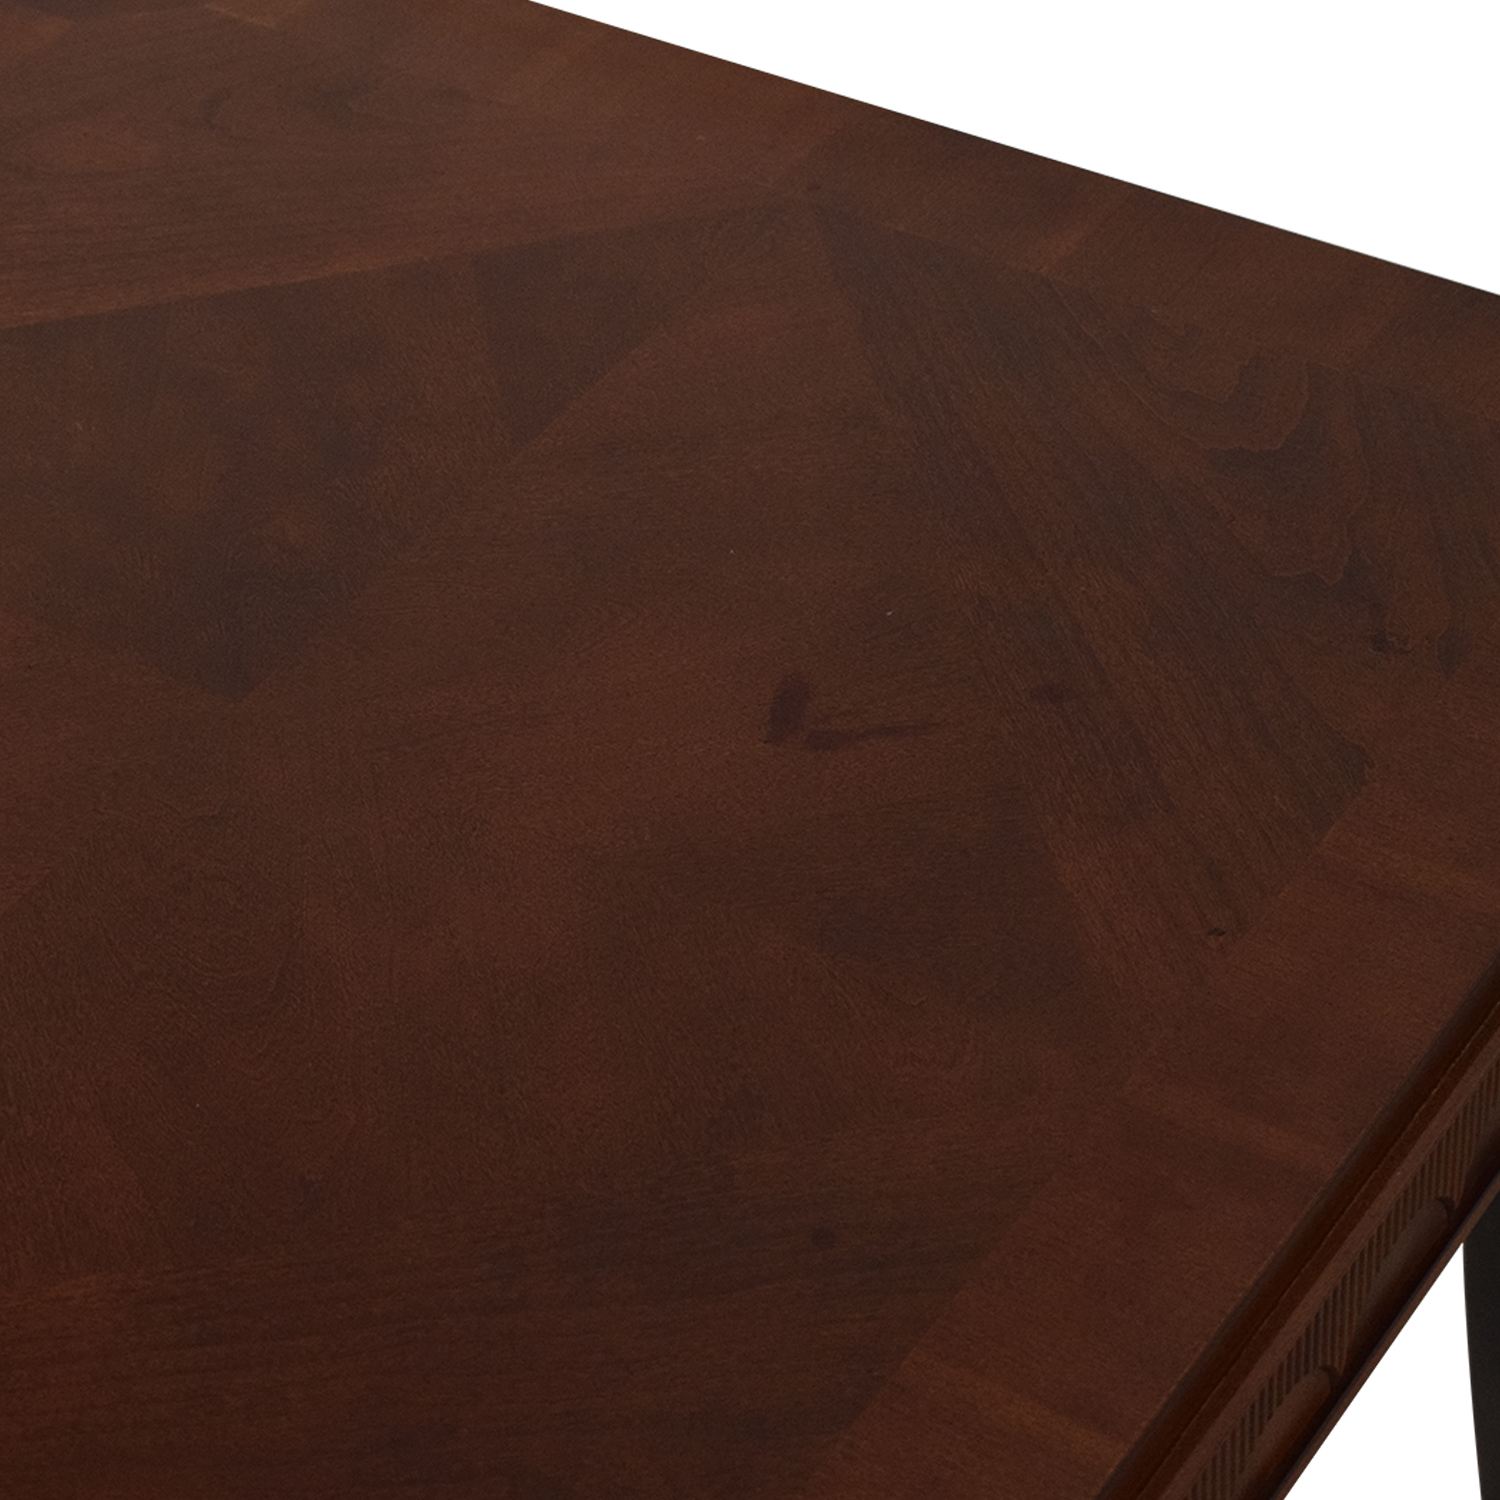 Ethan Allen Ethan Allen End Table Tables